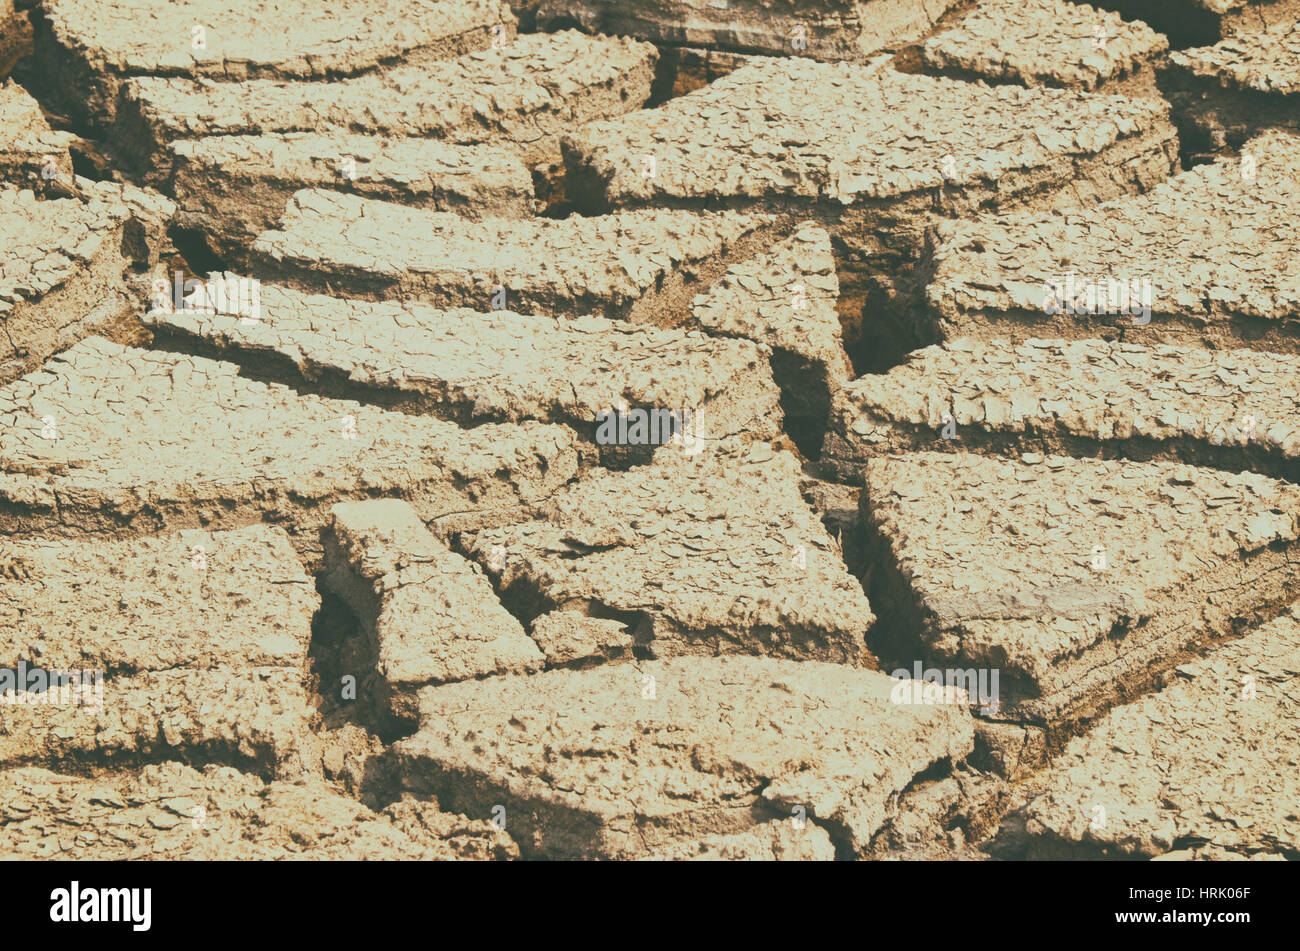 Dry mud field texture background - Stock Image